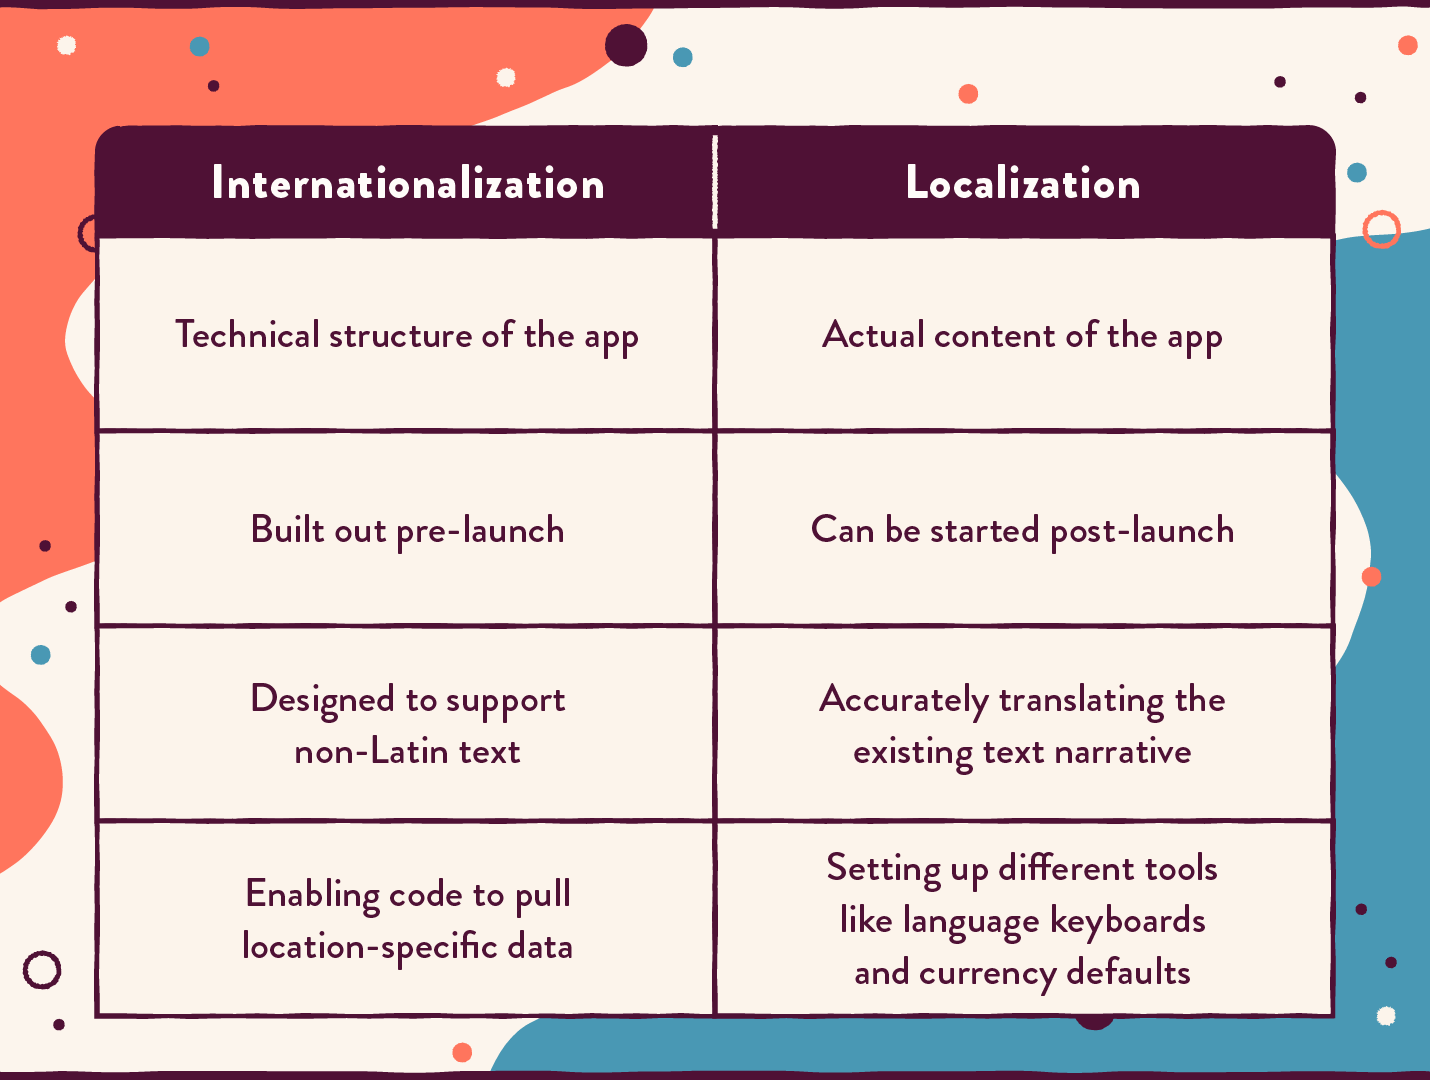 differences between localization and internationalization